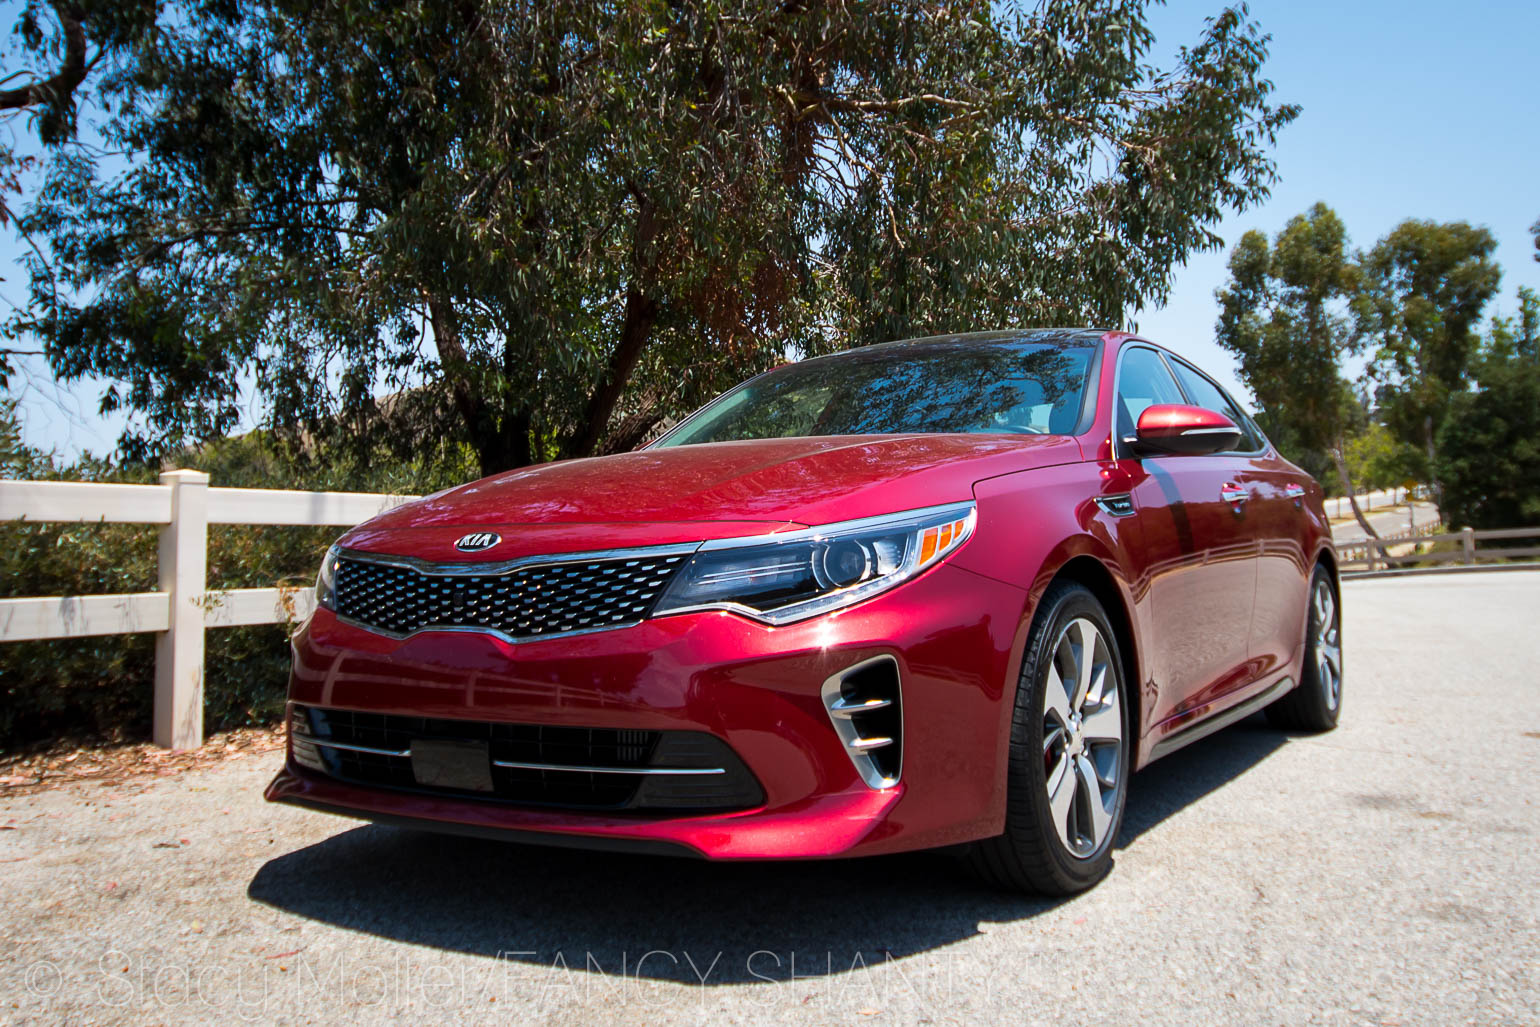 Kia Optima SX Turbo Features